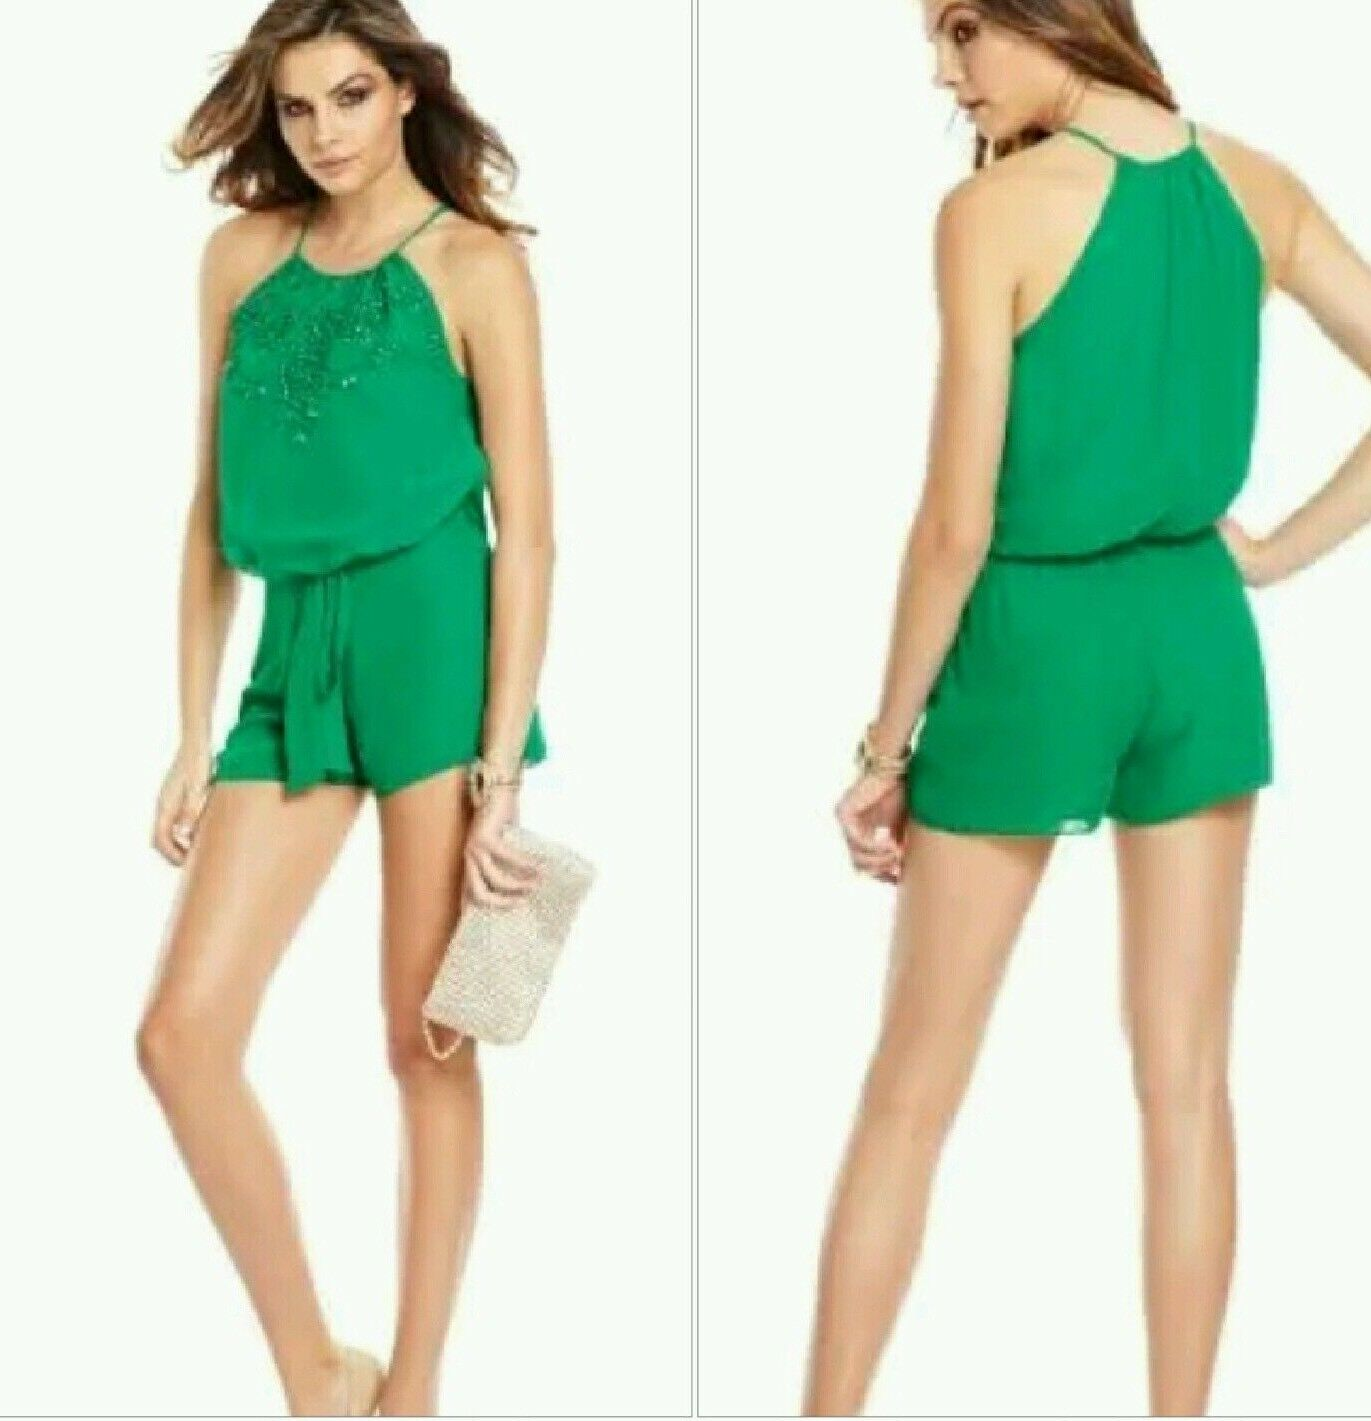 ☘NWT Guess by Marciano green Caliste Beaded Romper size 6☘